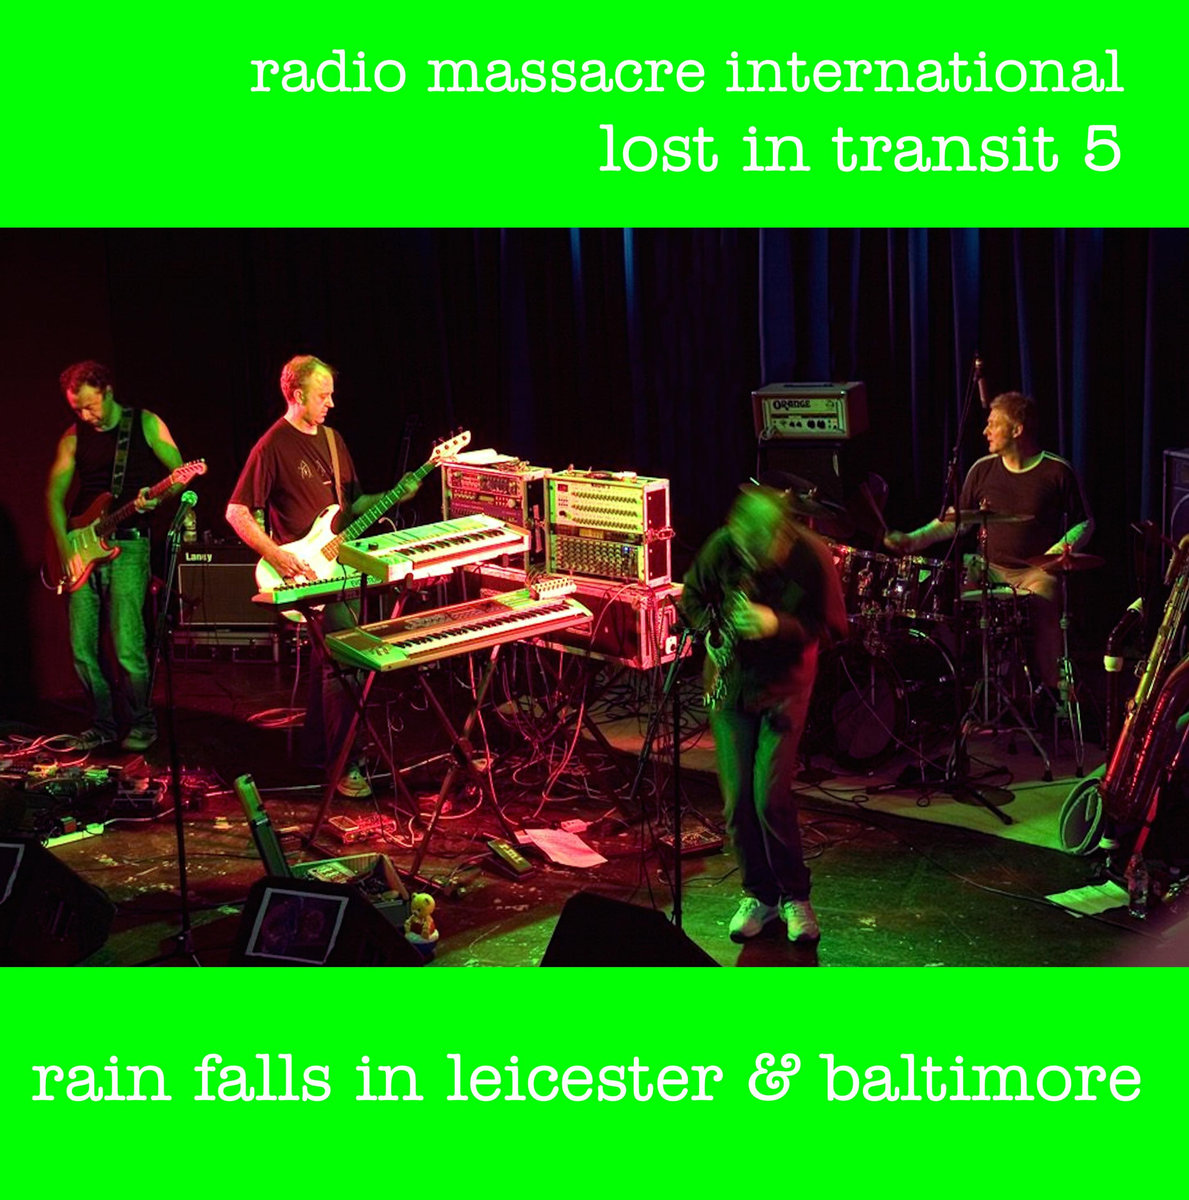 lost in transit 5: rain falls in leicester & baltimore